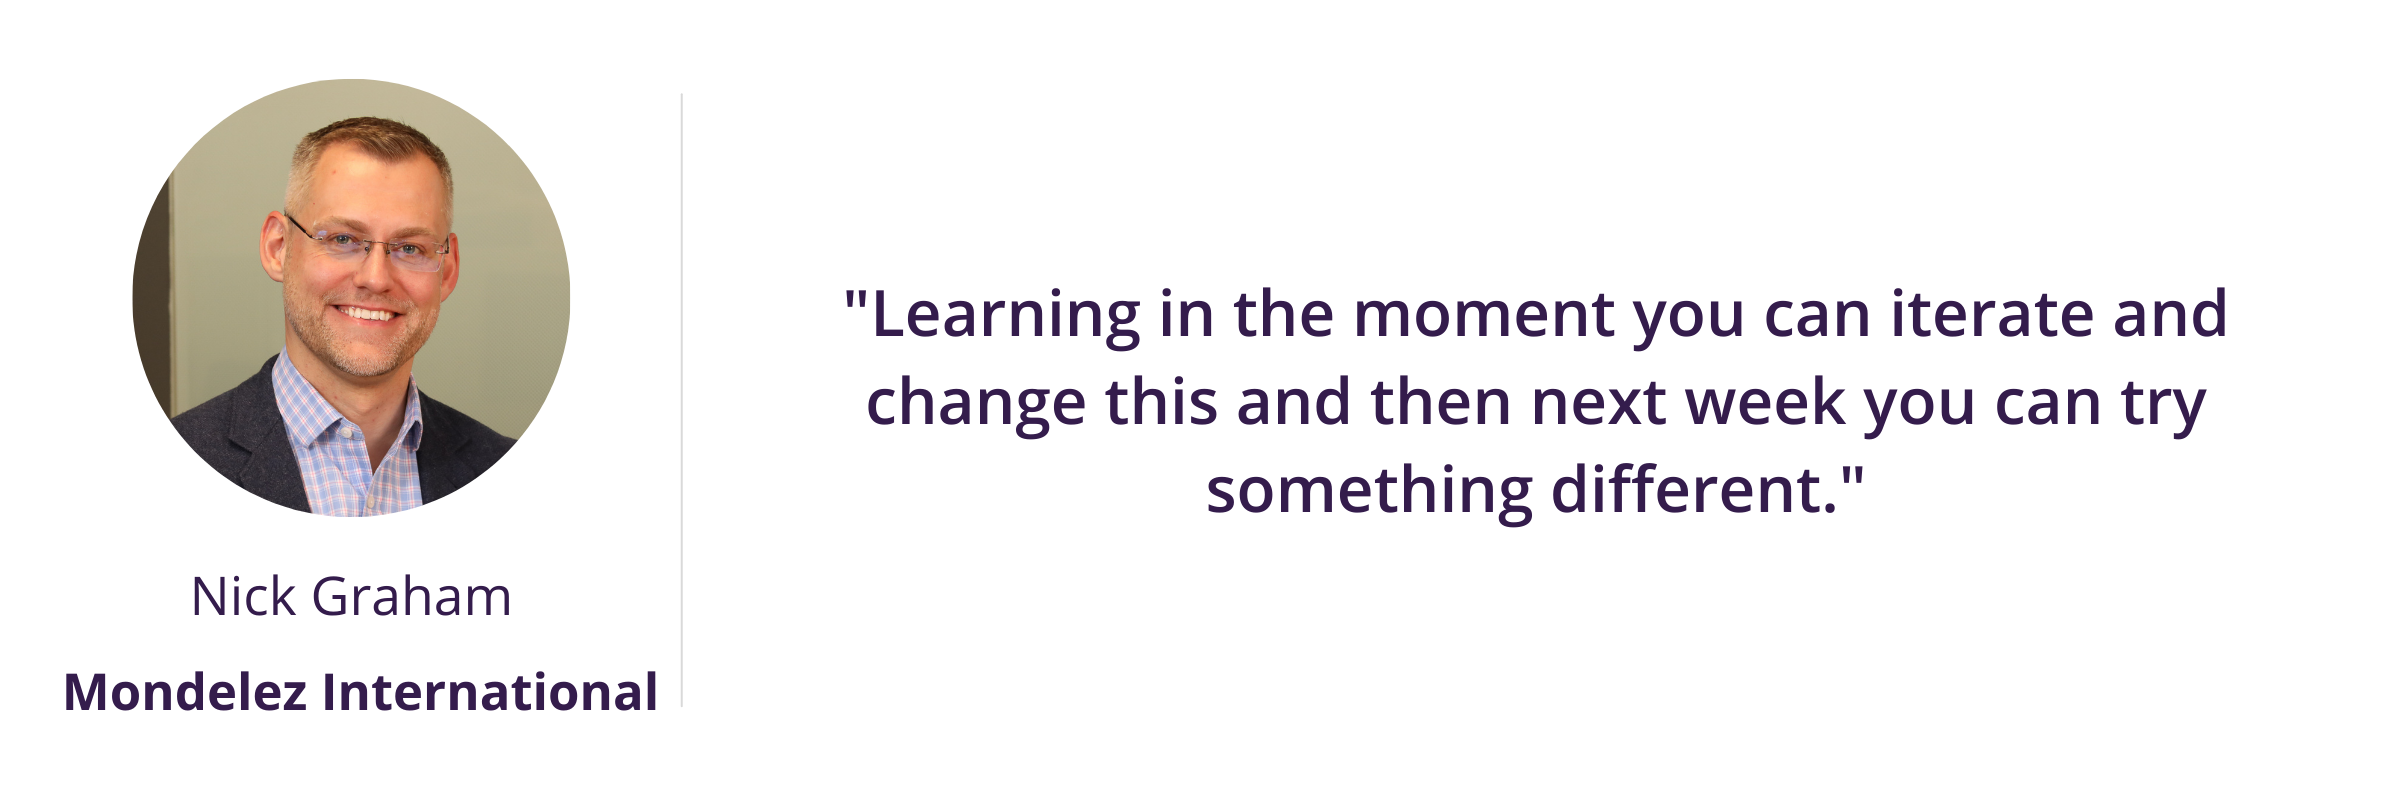 """""""Learning in the moment you can iterate and change this and then next week you can try something different."""""""